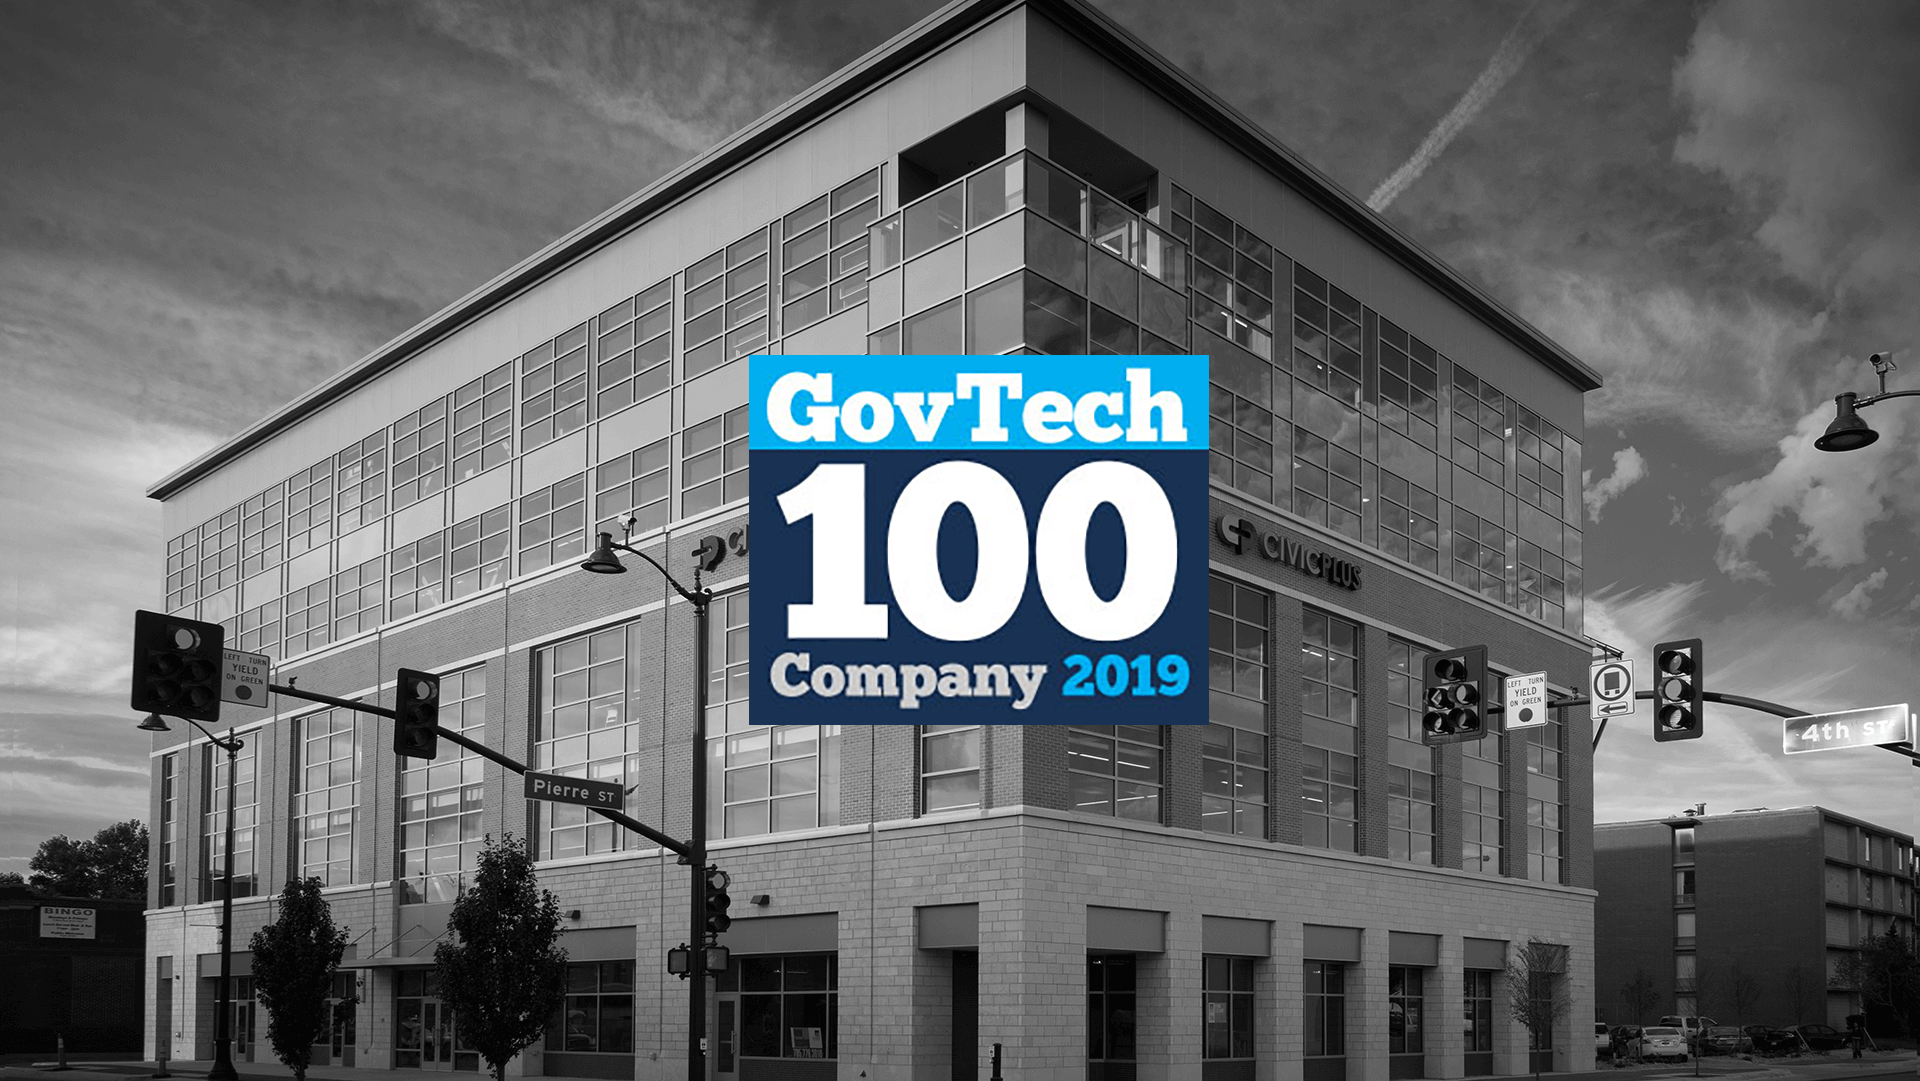 [Updated] CivicPlus Recognized as GovTech 100 Company for 2019